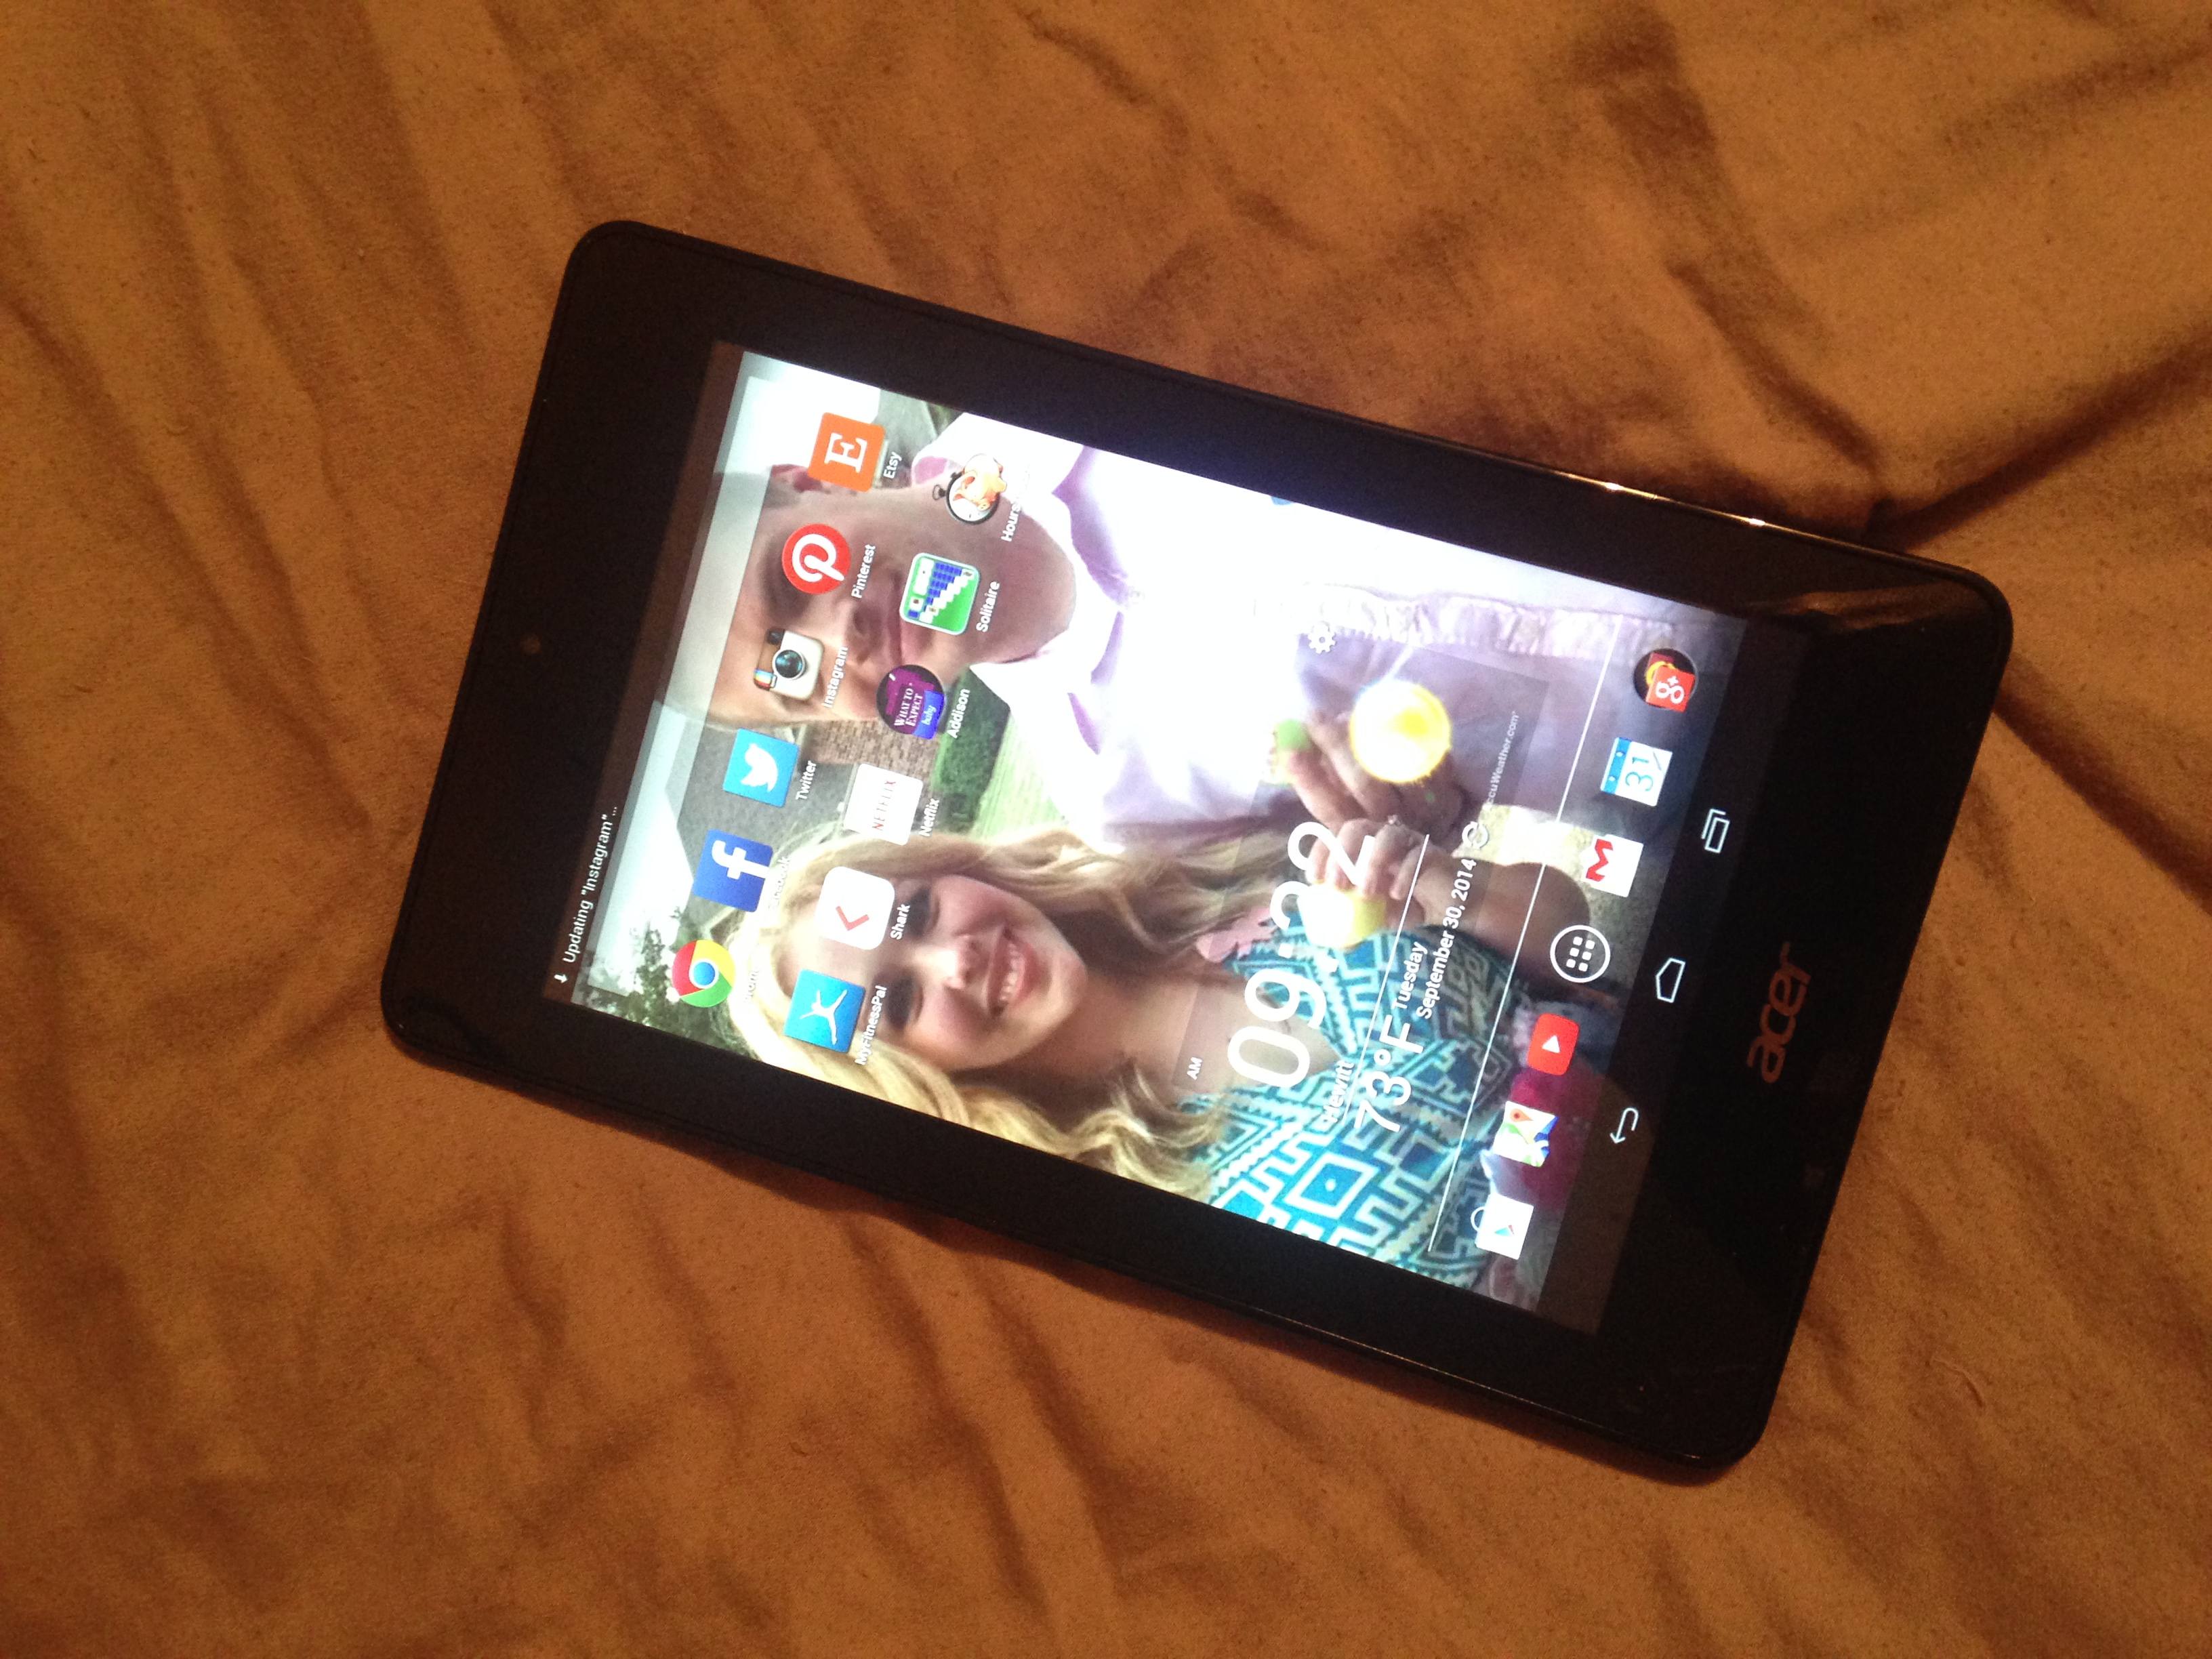 Love my Acer tablet from Intel!  Amazing apps, fast charge, and easy to use!